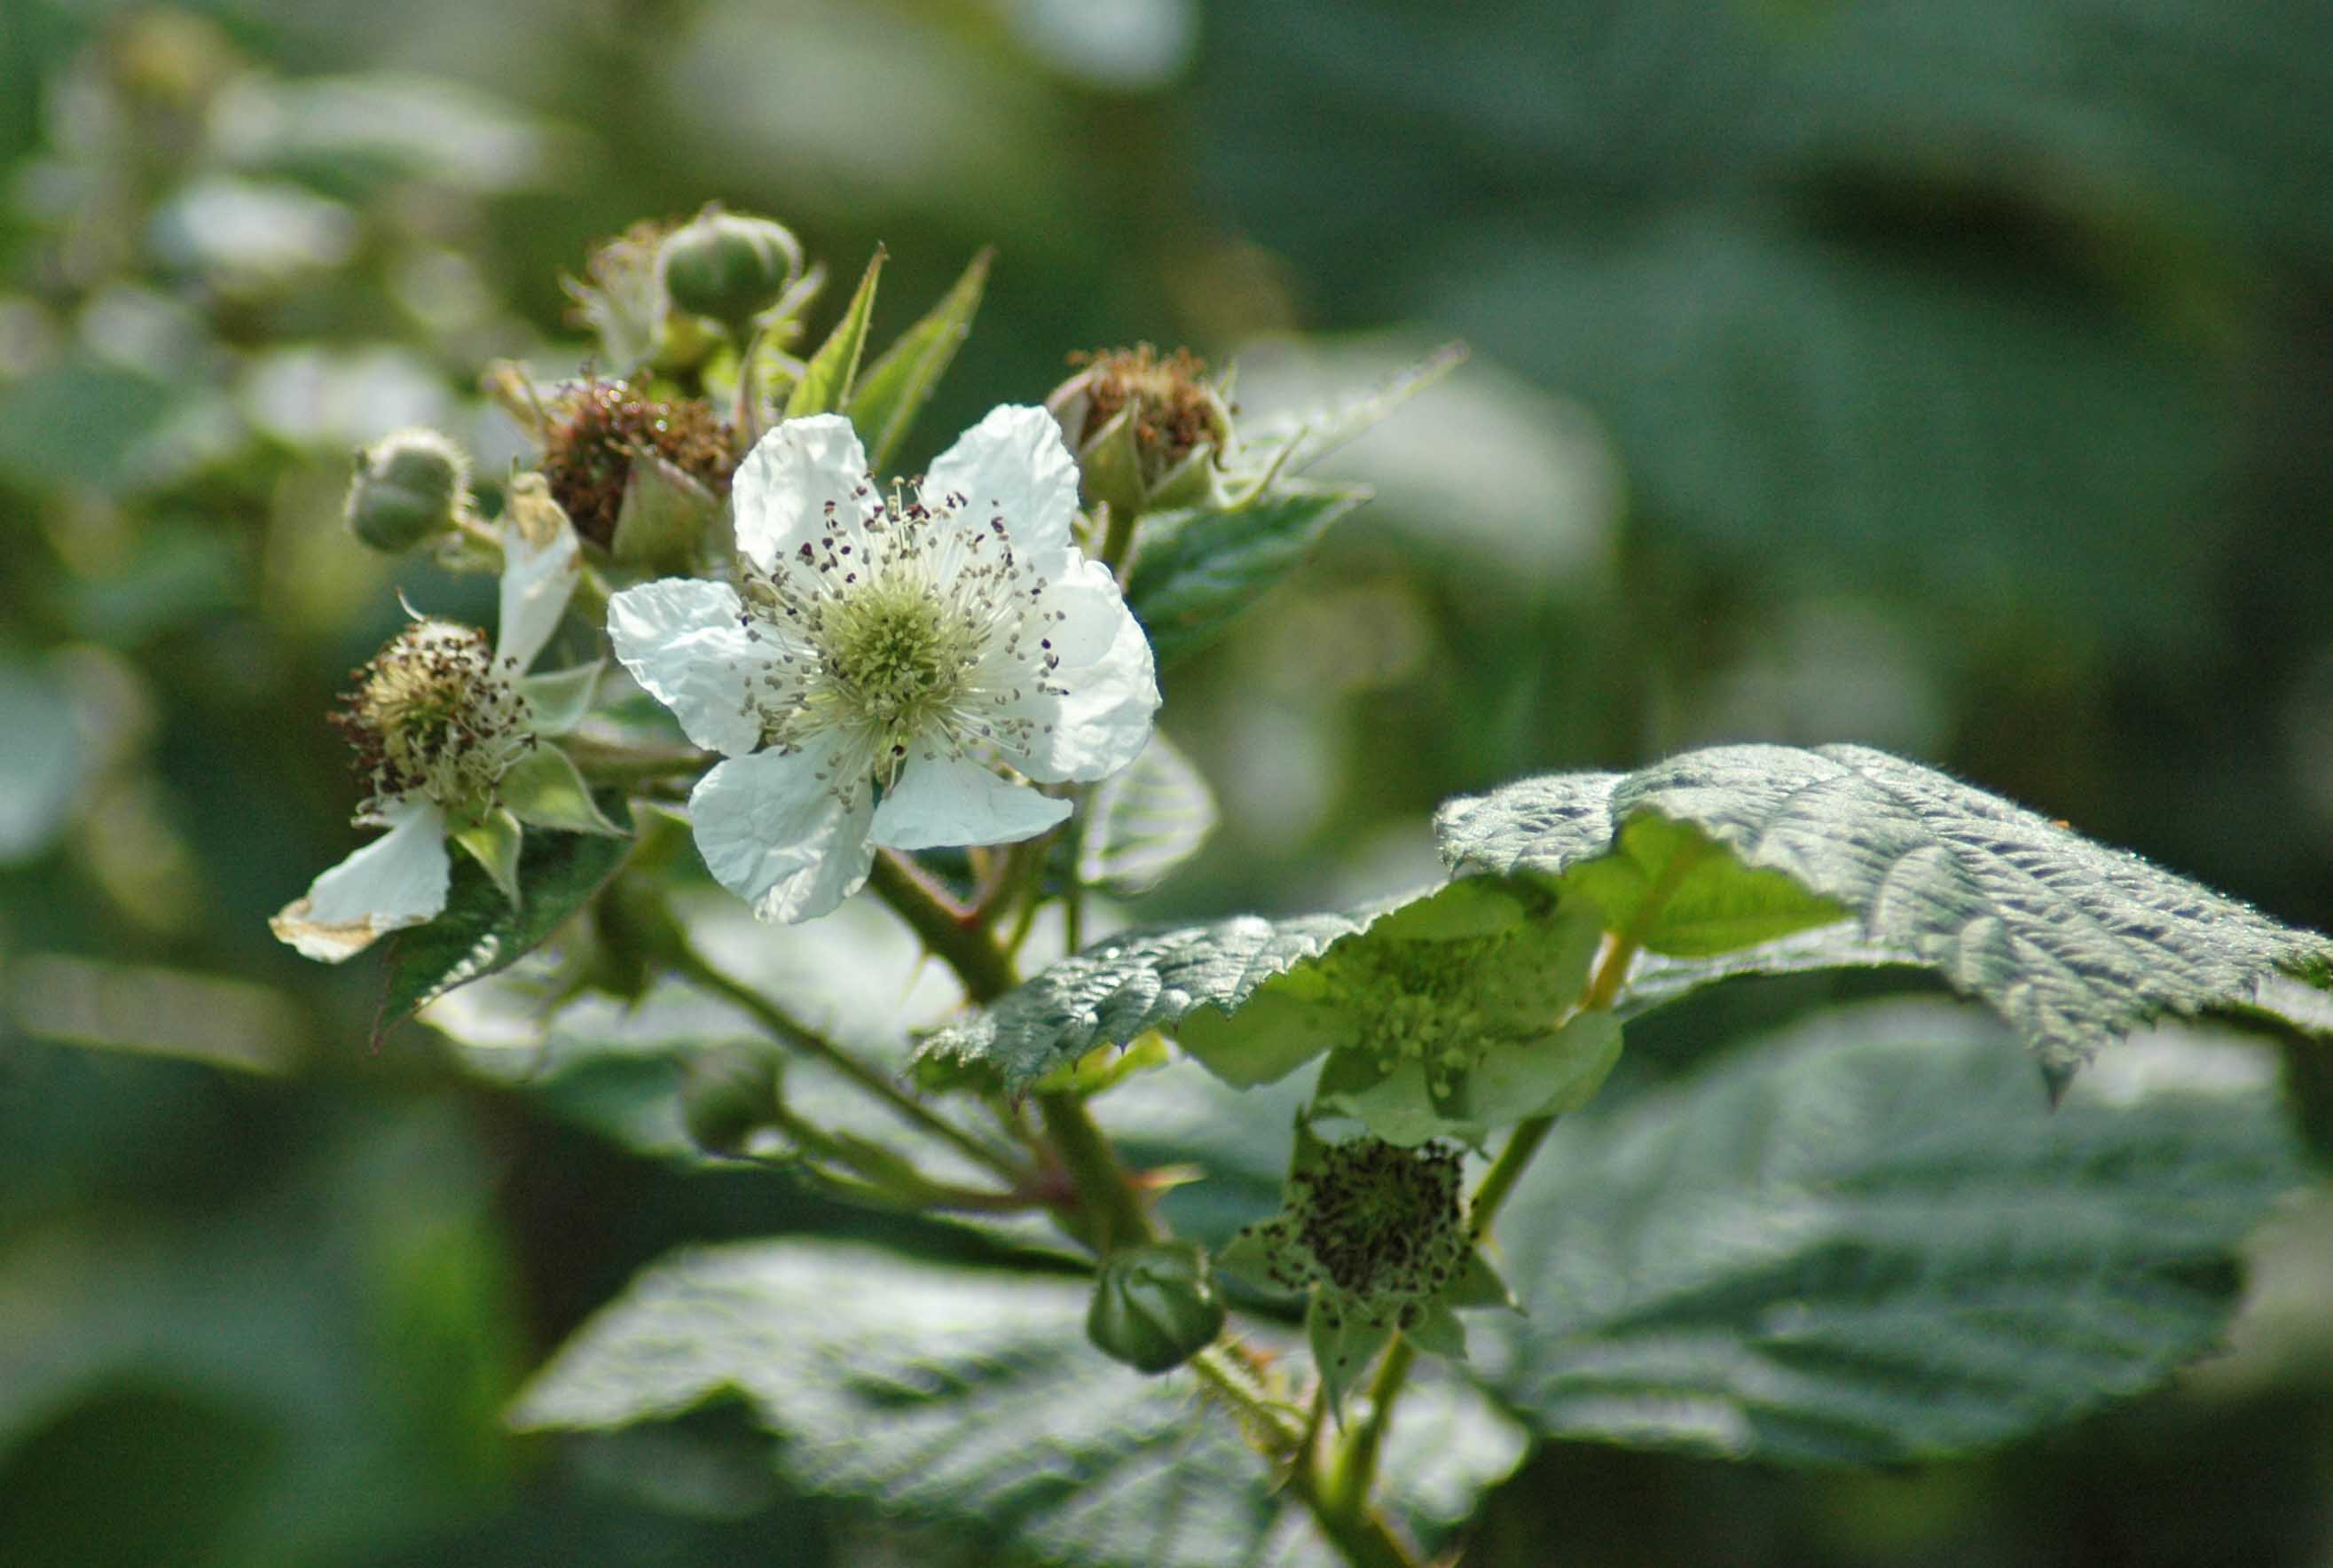 The blackberry bramble | everyday nature trails